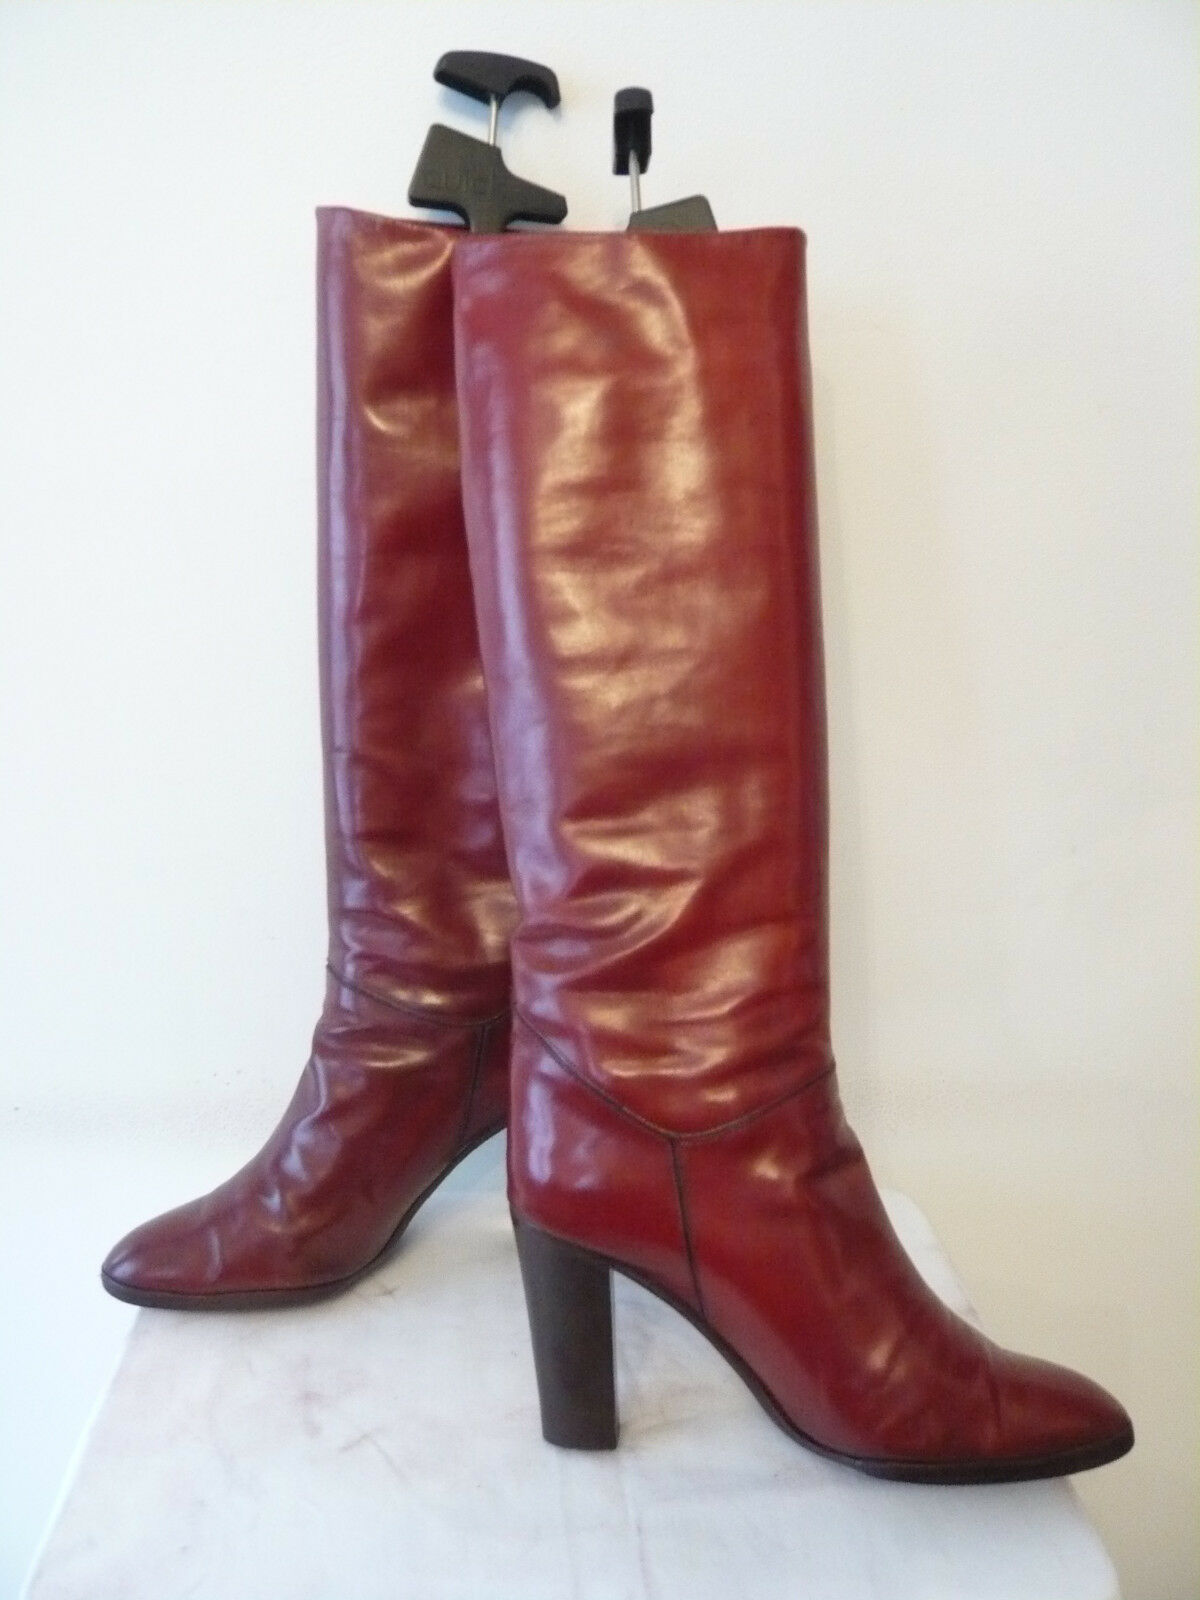 Stiefel Vintage 1982  Bordeaux-rot  - - - CHARLES JOURDAN Design --- T.39,5 75aef7